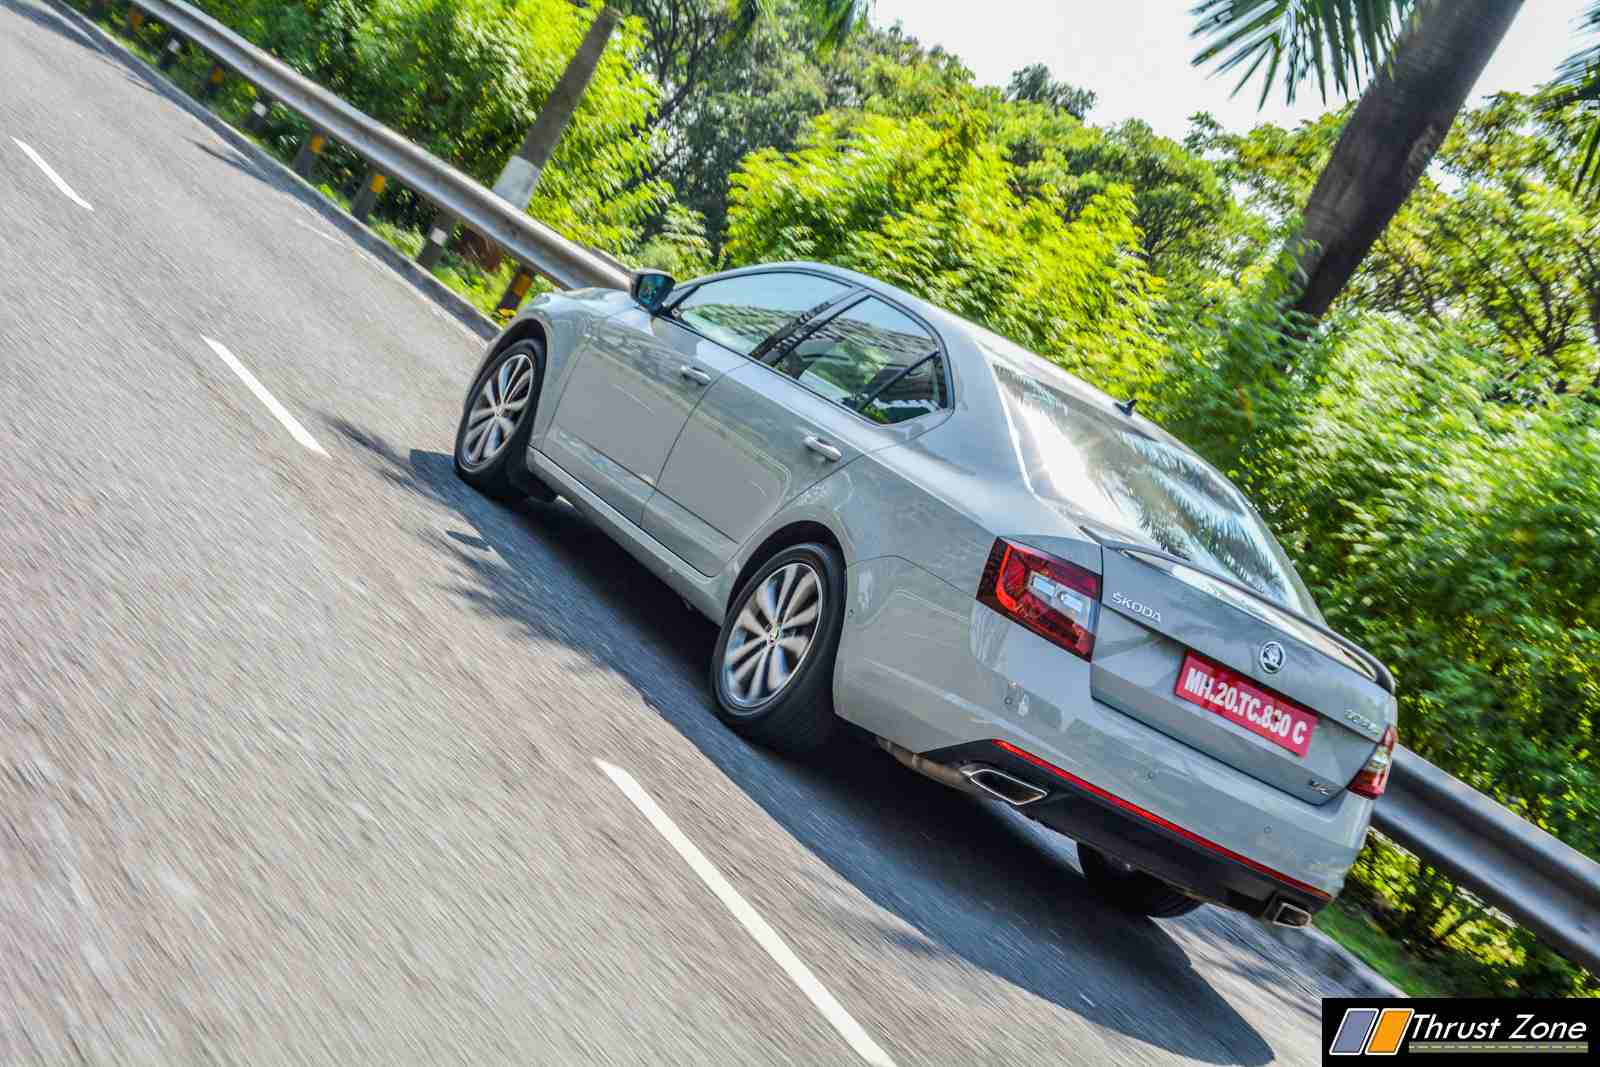 https://www.thrustzone.com/wp-content/uploads/2017/10/Skoda-Octavia-RS-230-India-Review-1.jpg